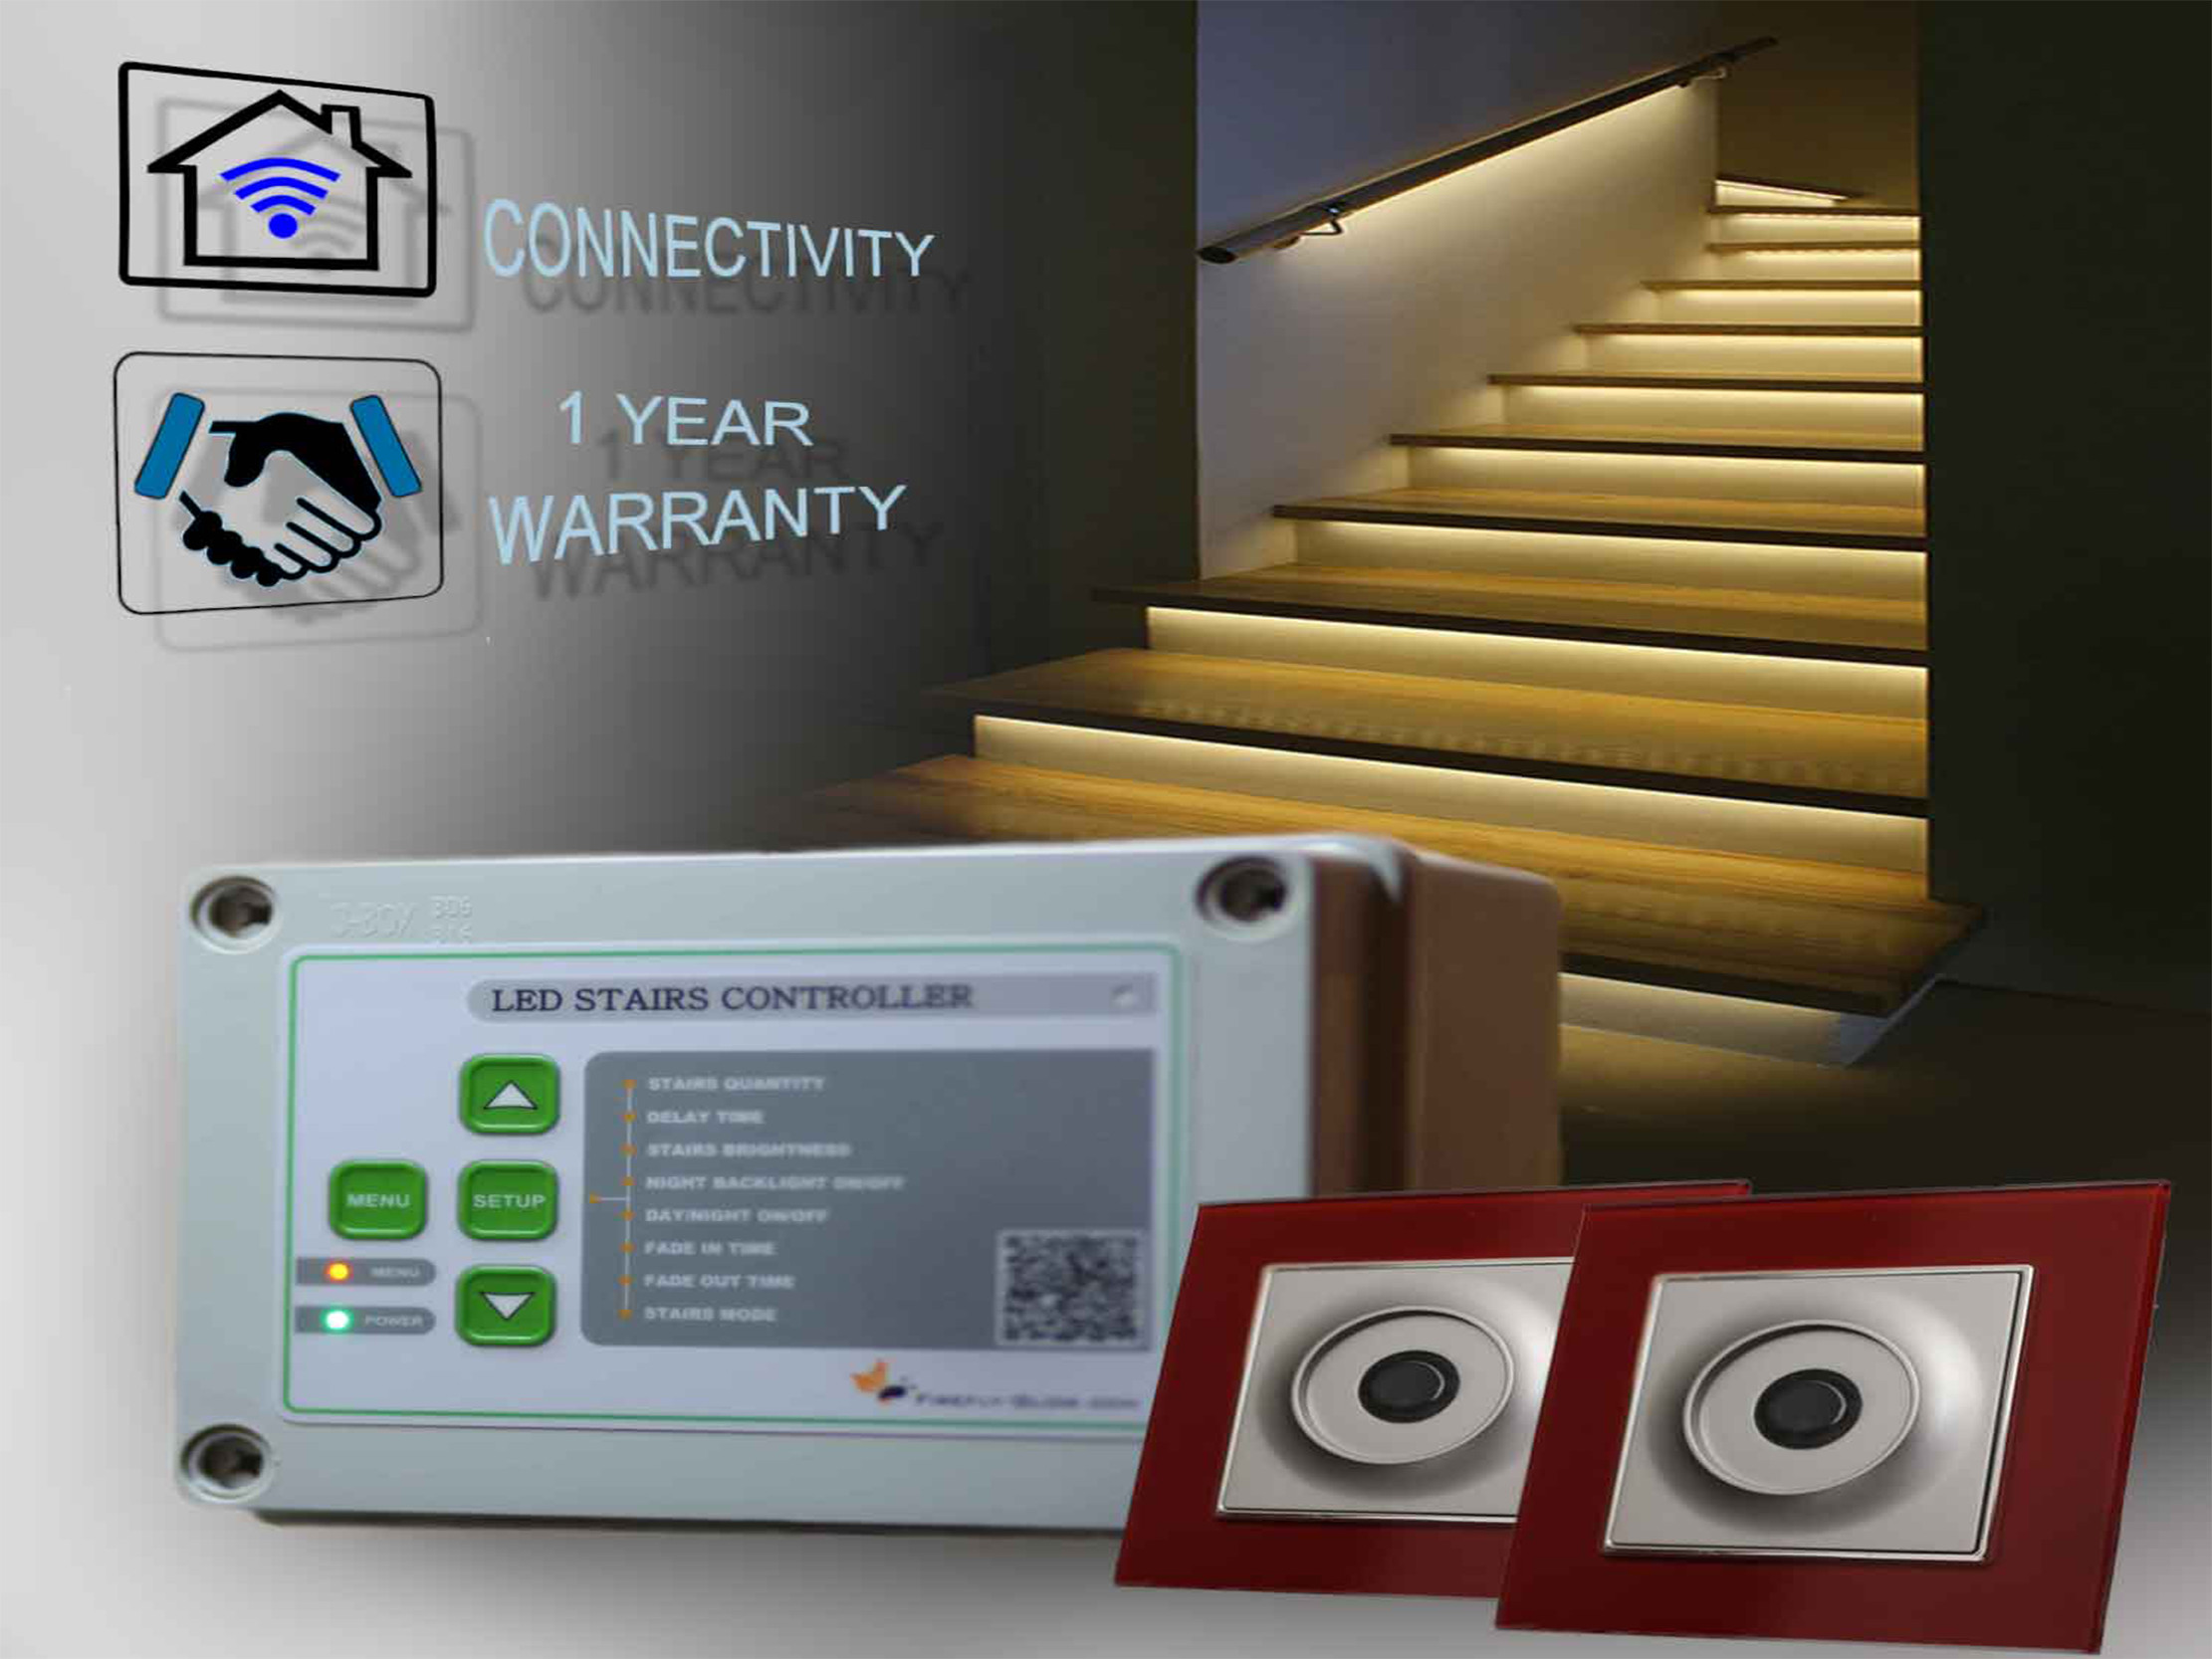 STR CONTROLLER LED STAIRS AUTOMATION